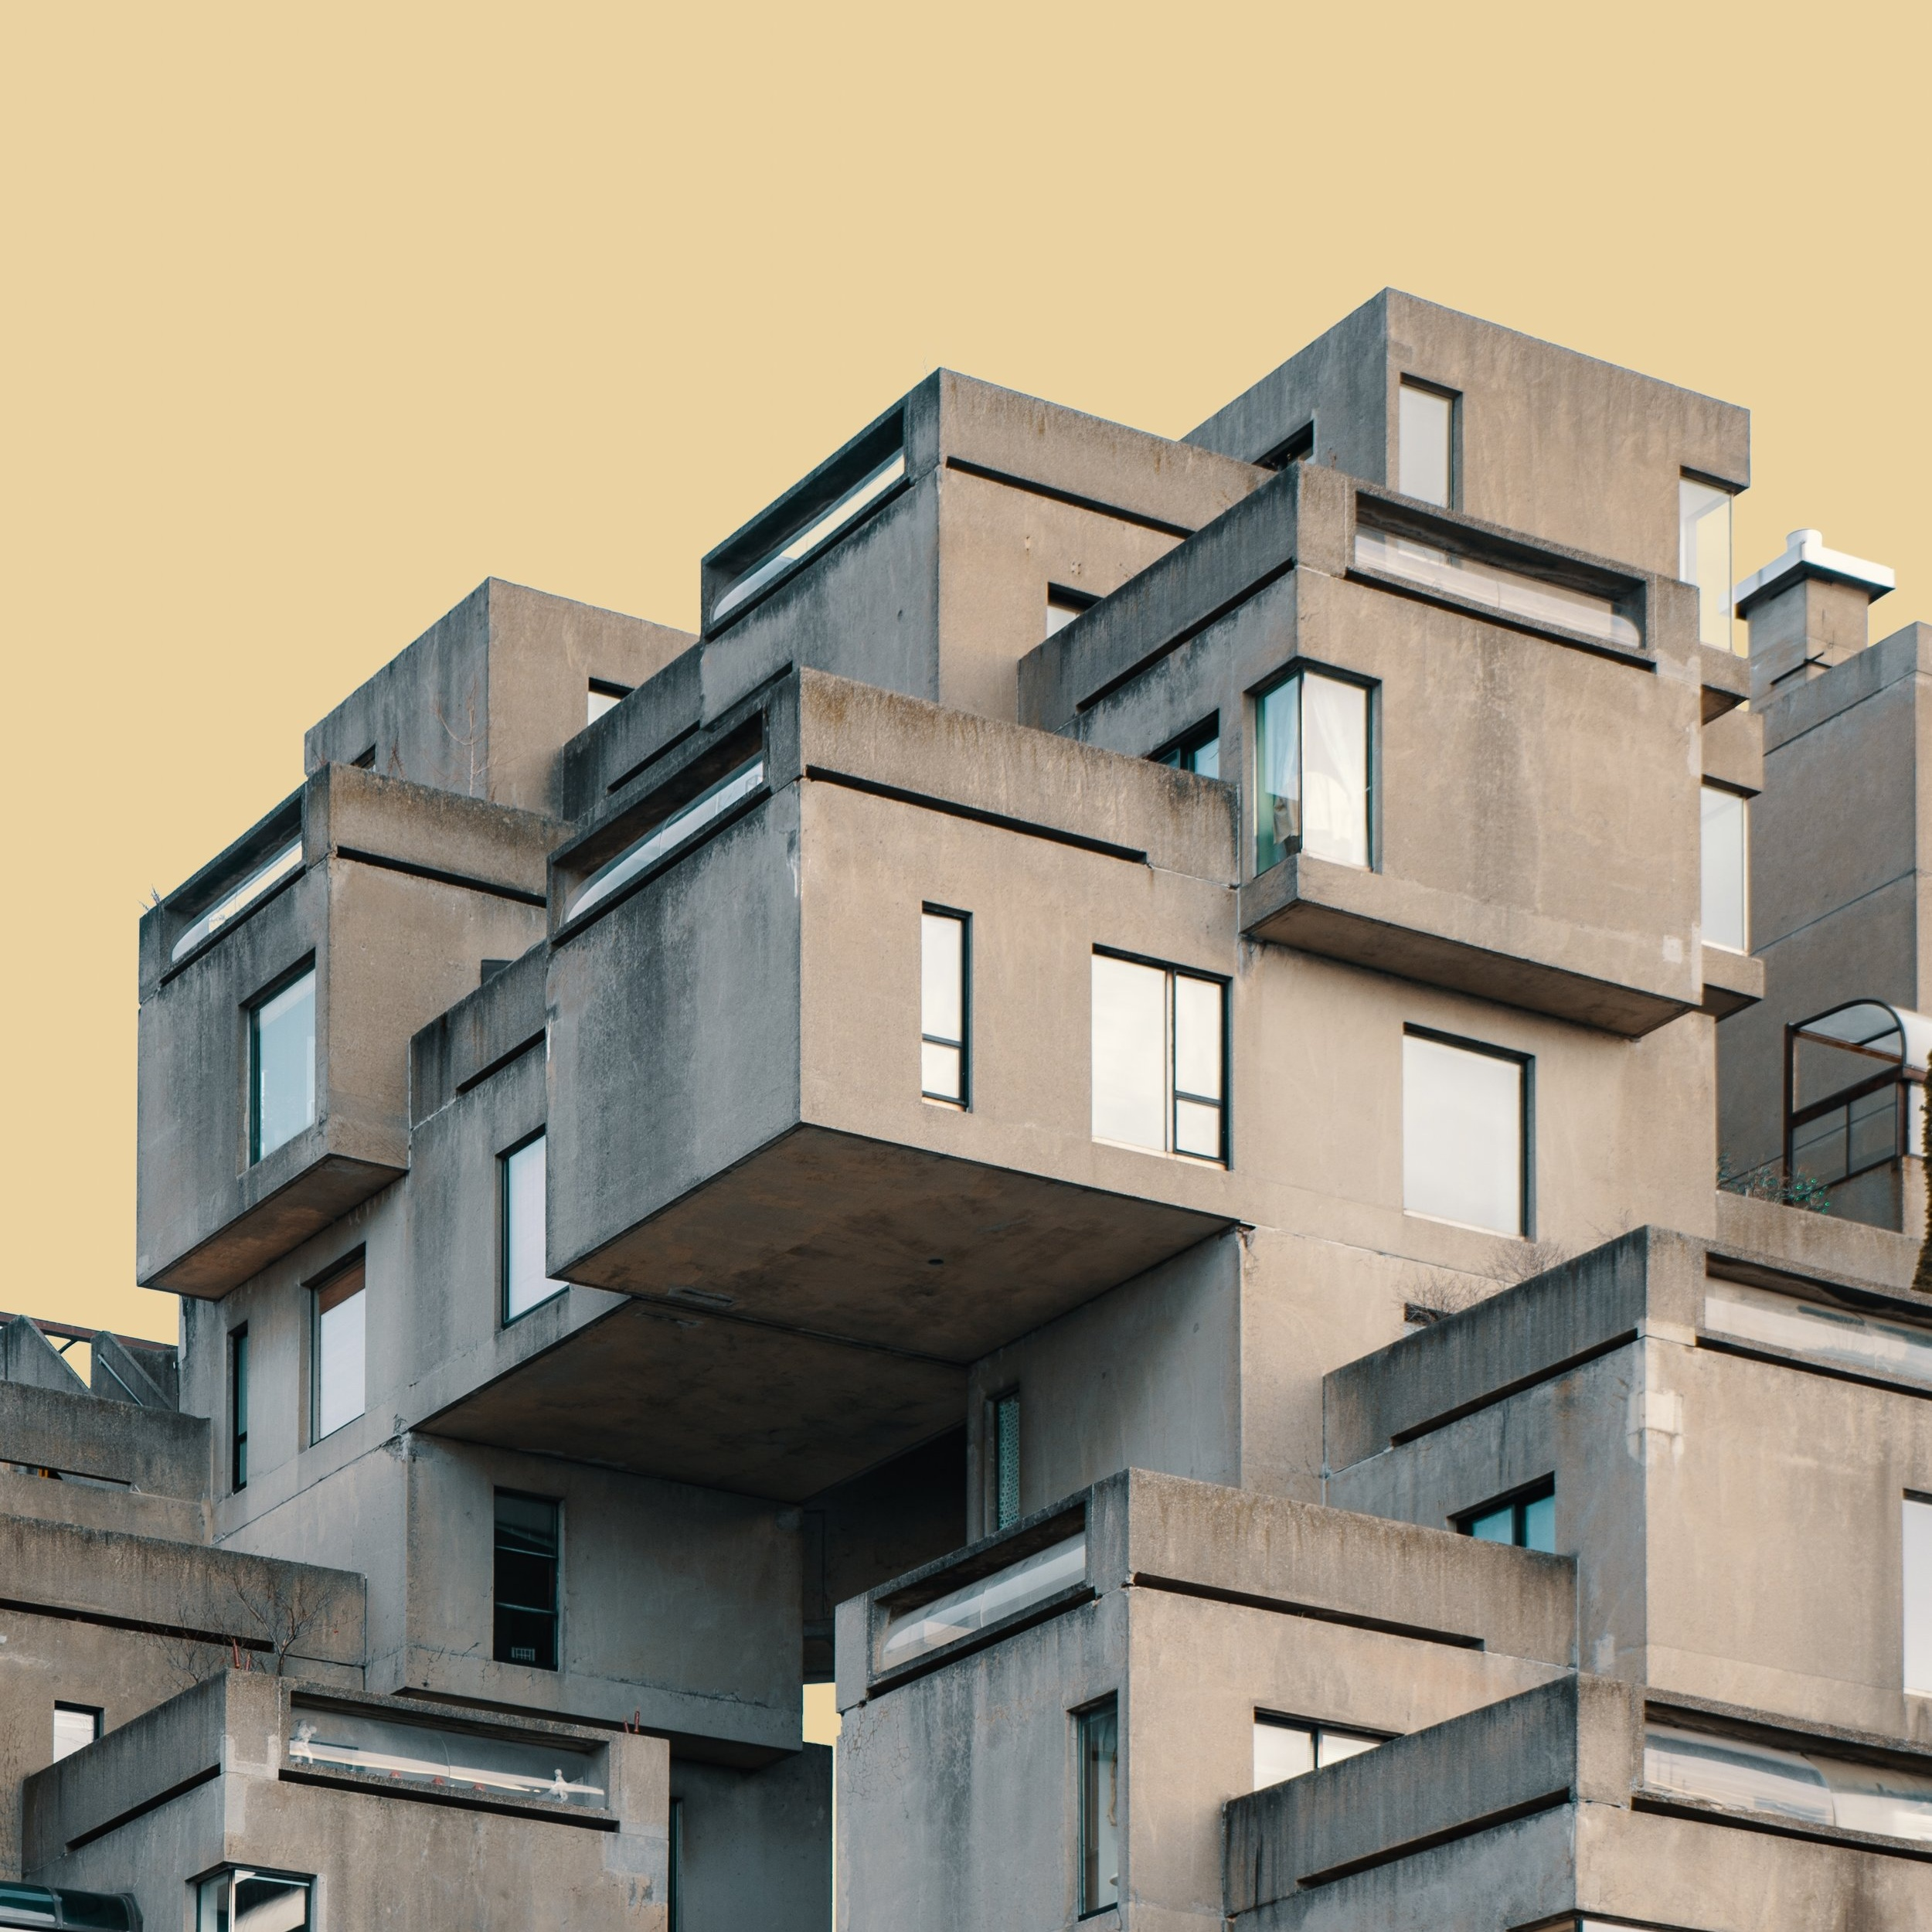 - CASA-ACEA is a non-profit organization which brings together students of architecture from across Canada to promote and celebrate architectural design and education. CASA-ACEA works in partnership with the Canadian Architecture Certification Board (CACB) and Architecture Canada (RAIC) to provide students with information and resources to enhance the value of their education as well as gain awareness of how to best transition from school into practice.